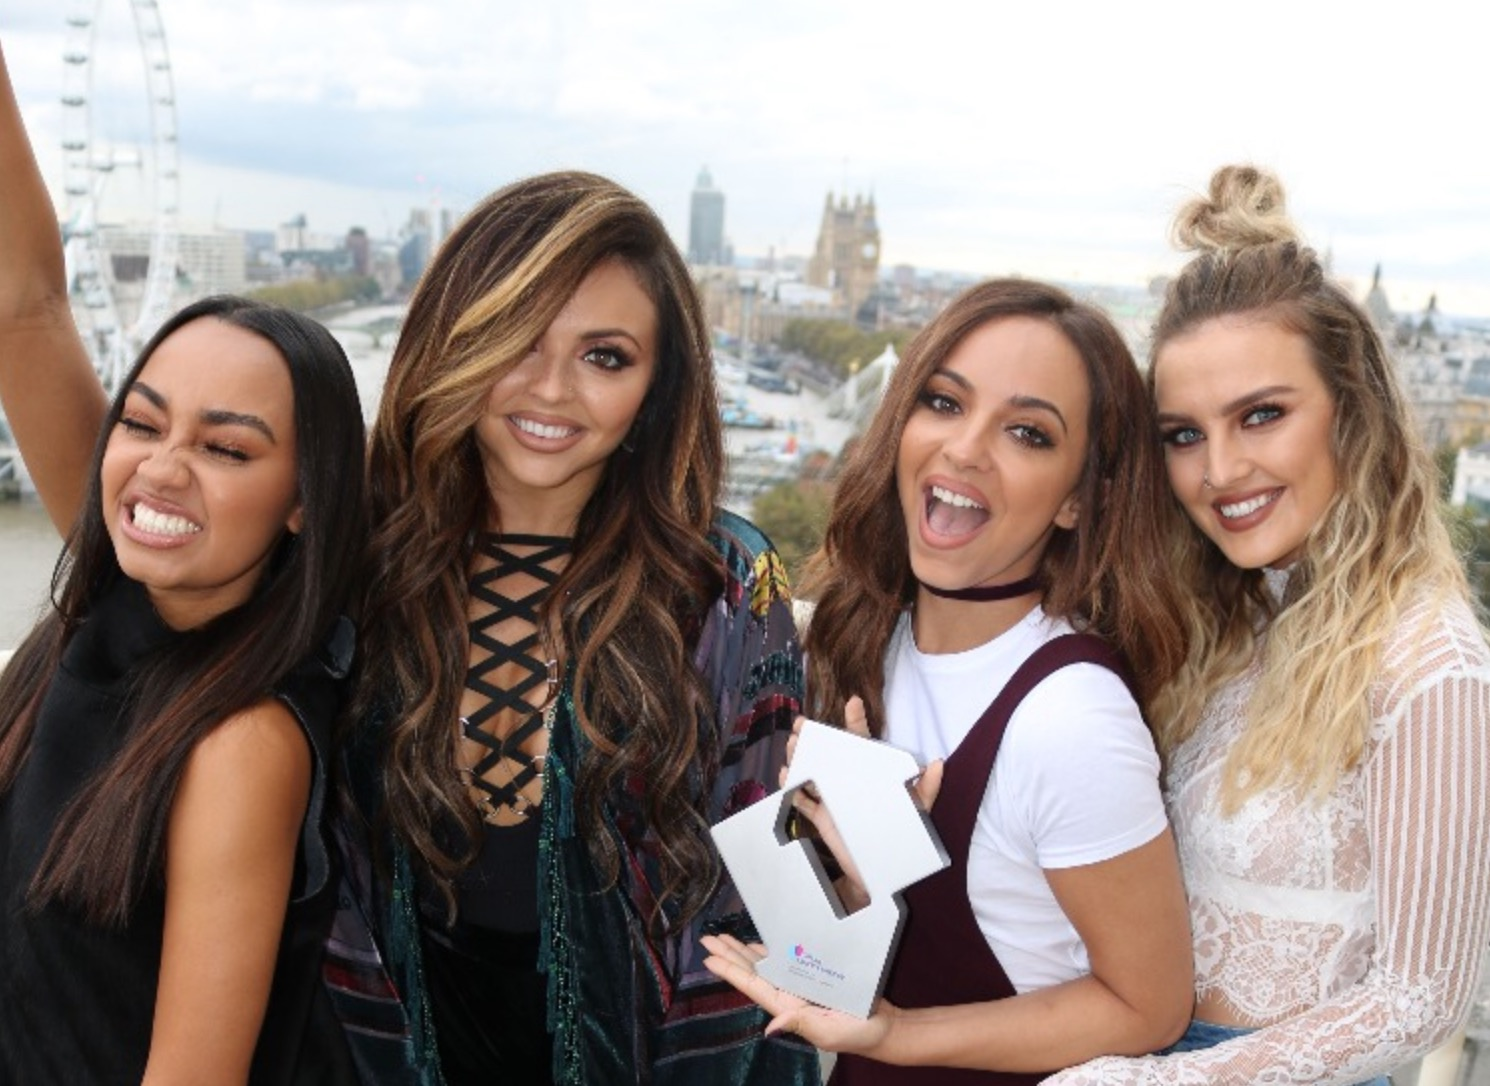 Little Mix presentan Reggaeton Lento con CNCO en X Factor UK